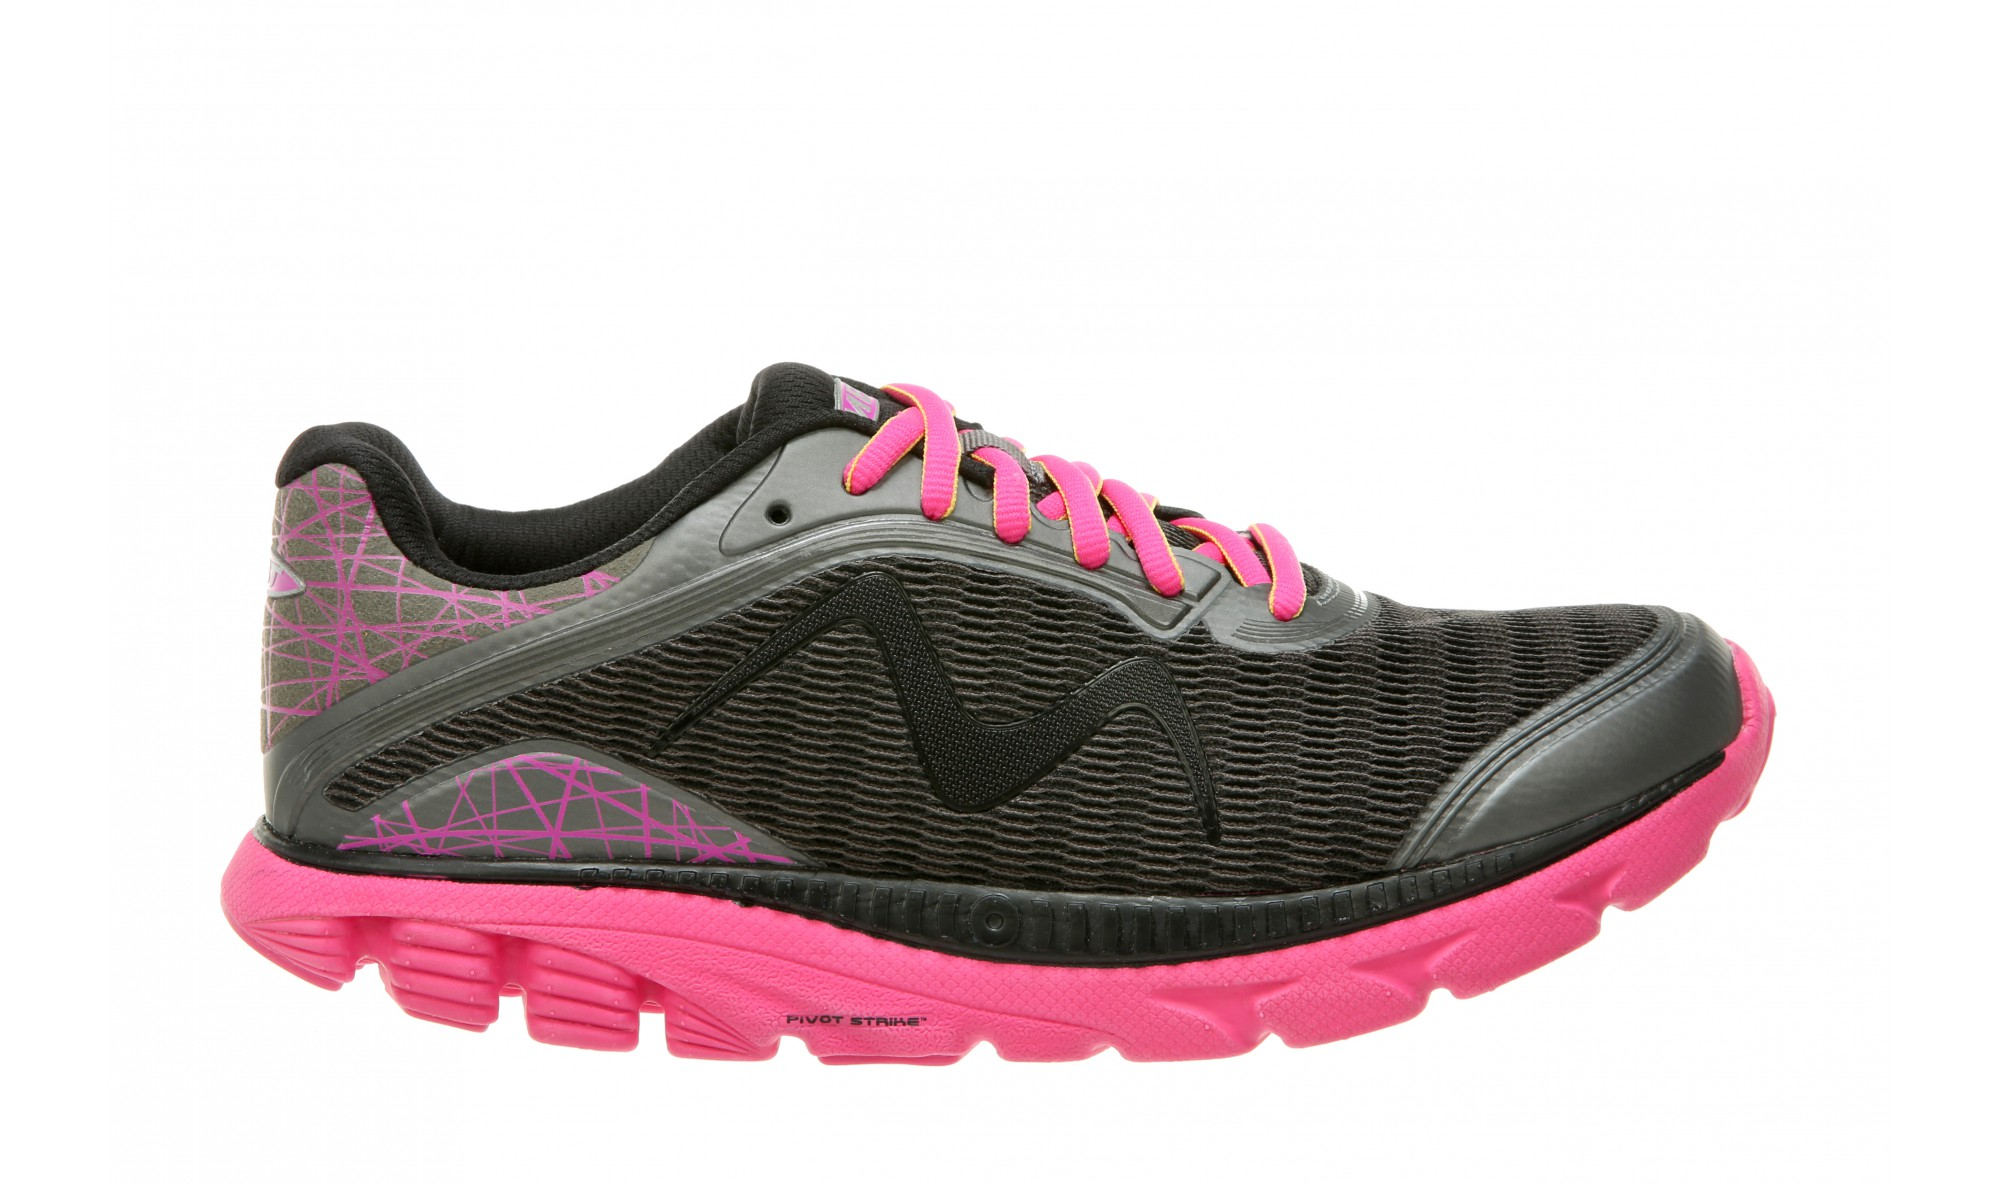 MBT Racer 18 - Women's - Dark Gray/Fuchsia